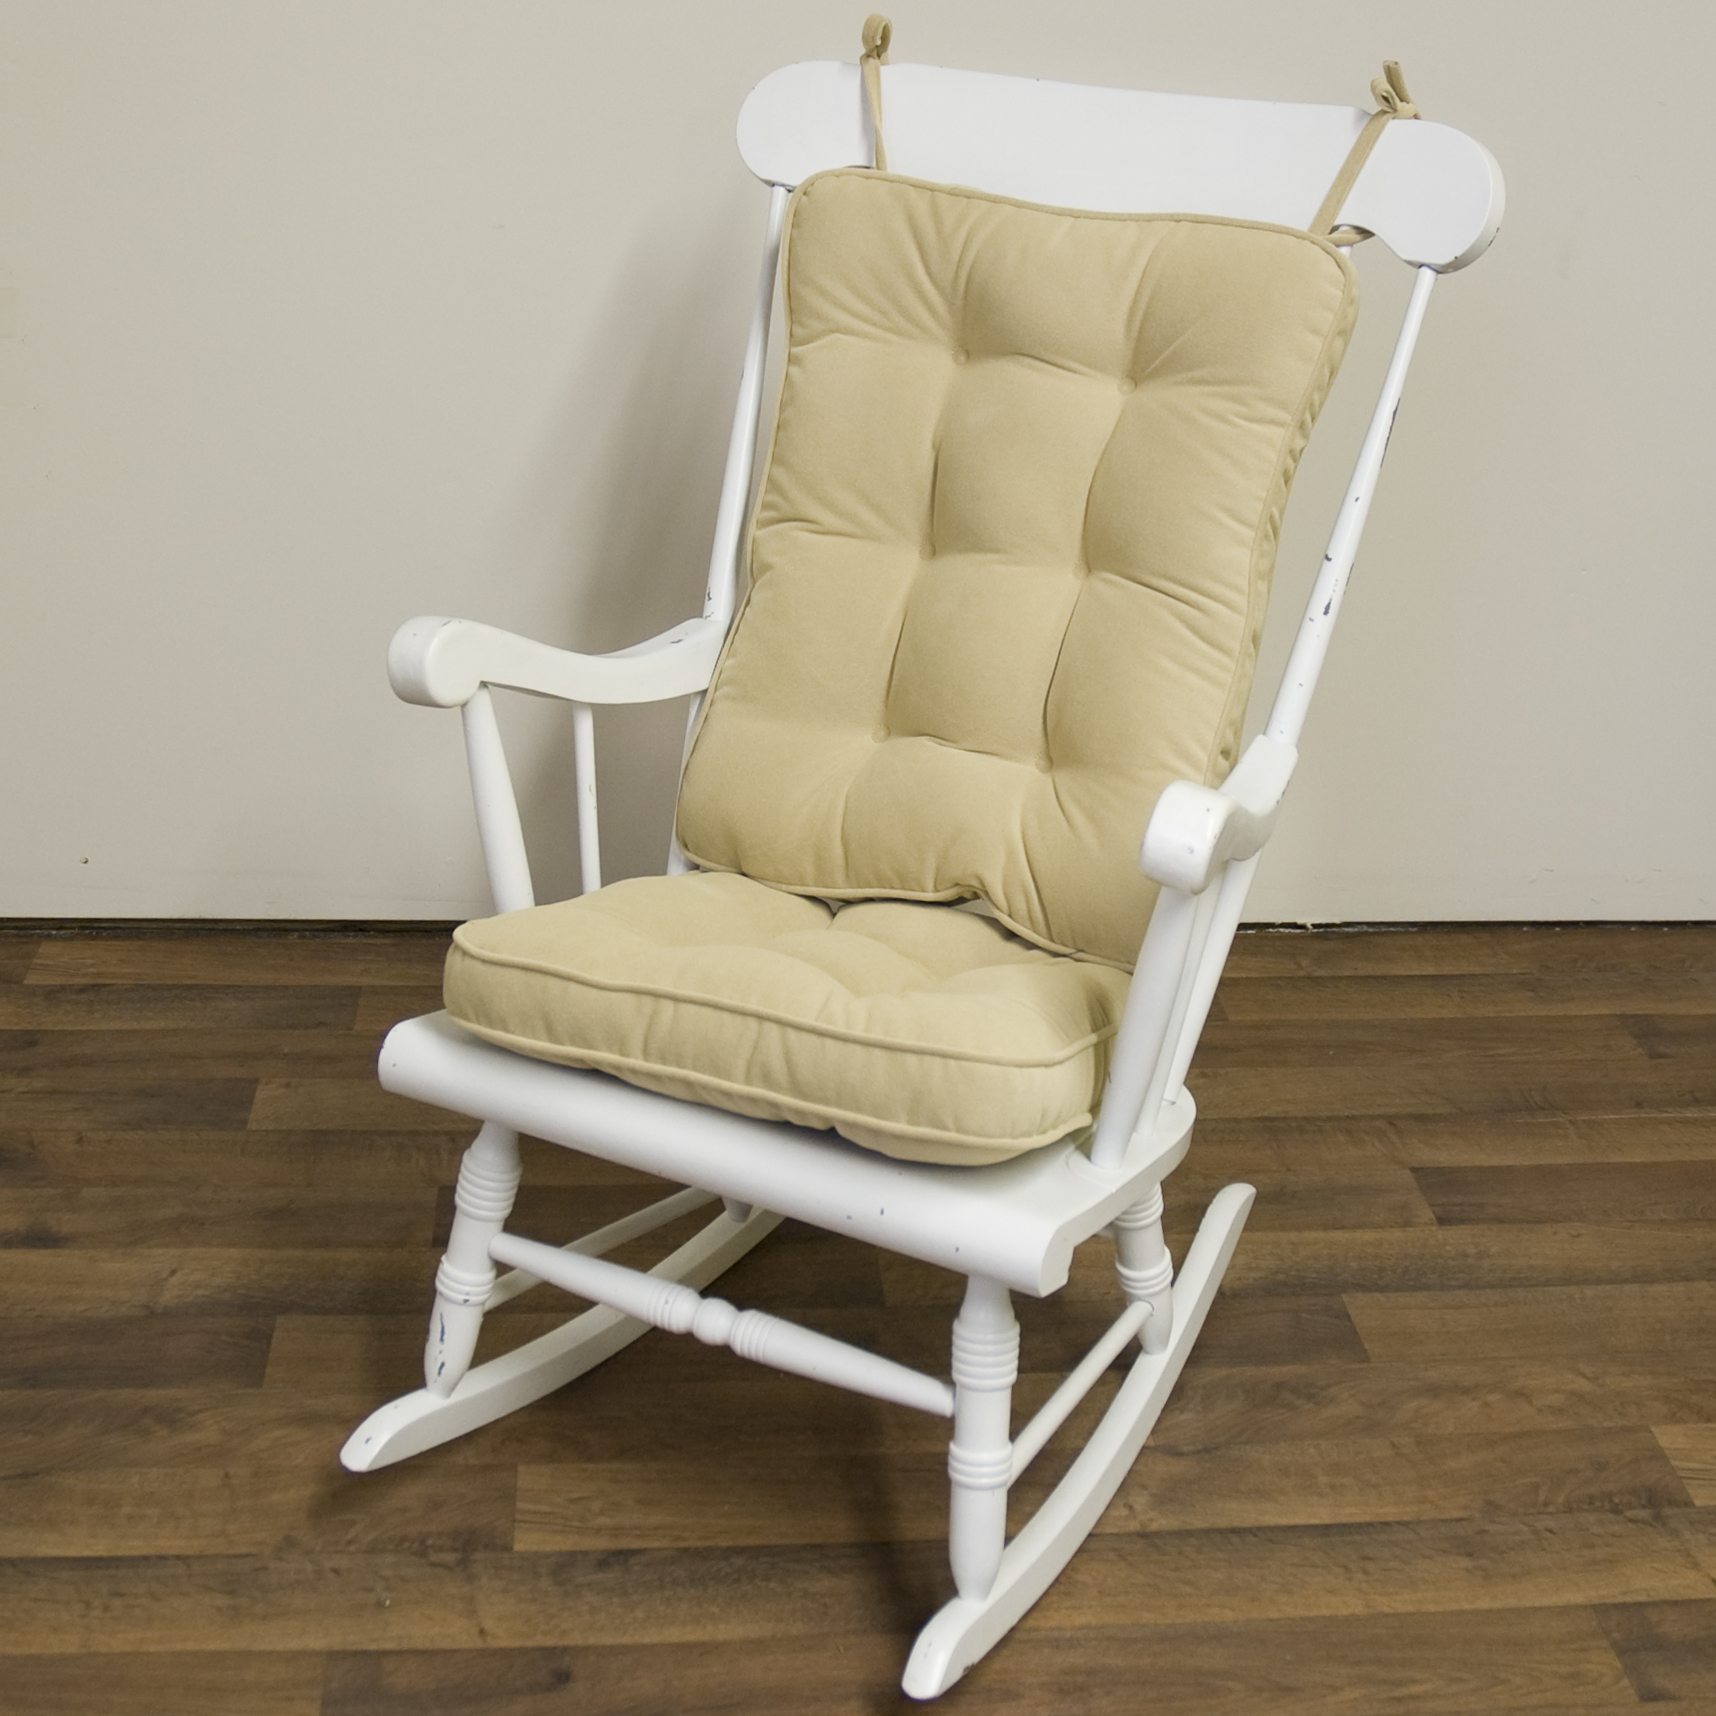 ... Outdoor Furniture > Rocking Chair > Original Two Seater Rocking Chair